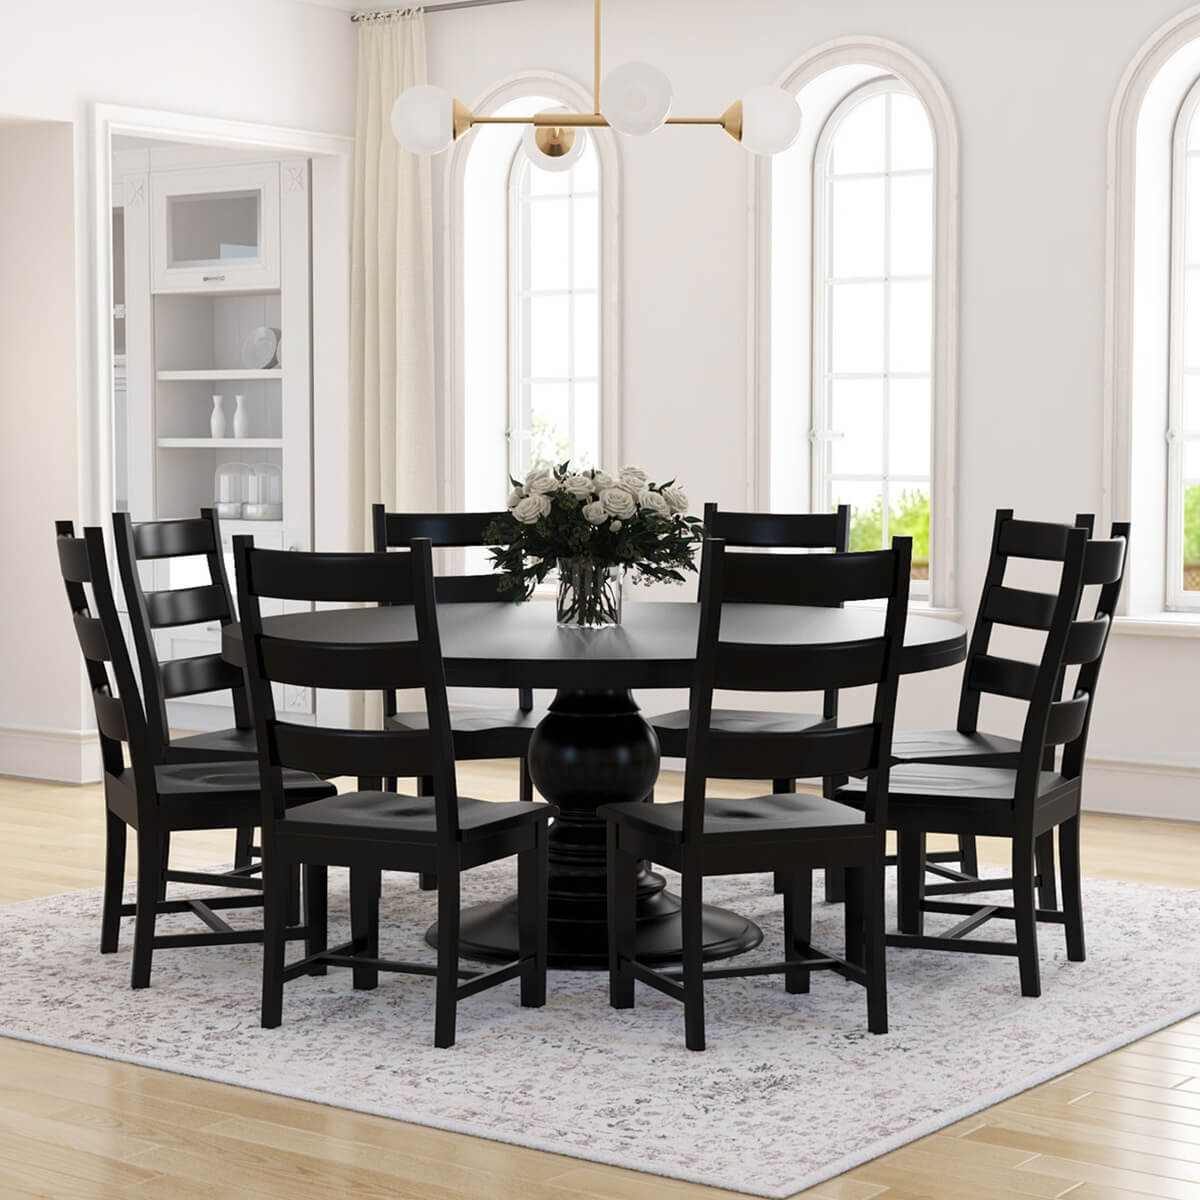 Nottingham rustic solid wood black round dining room table set for Black dining table set